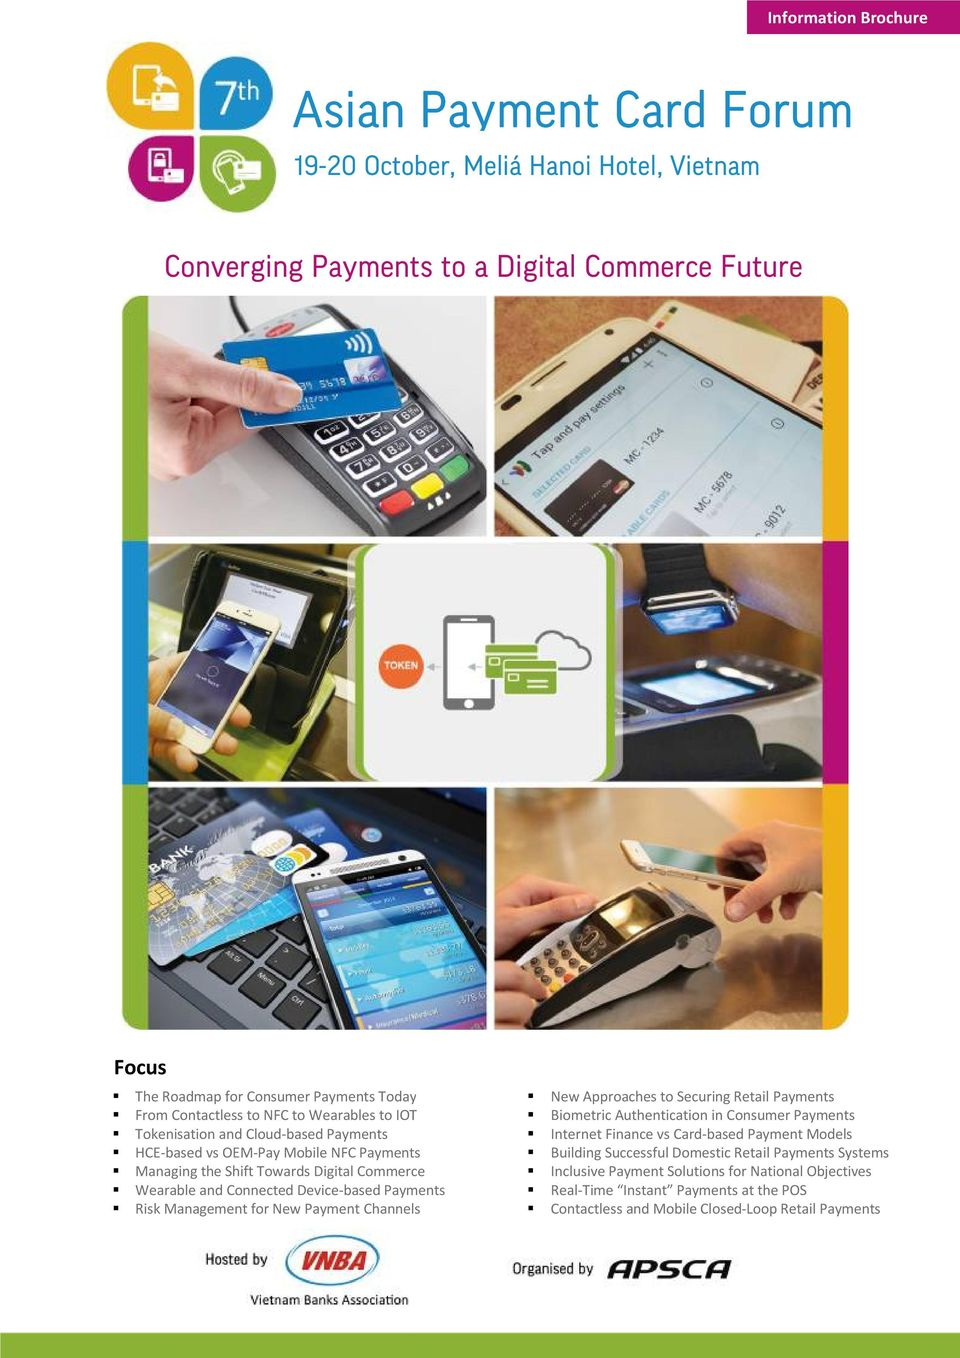 Device-based Payments Risk Management for New Payment Channels New Approaches to Securing Retail Payments Biometric Authentication in Consumer Payments Internet Finance vs Card-based Payment